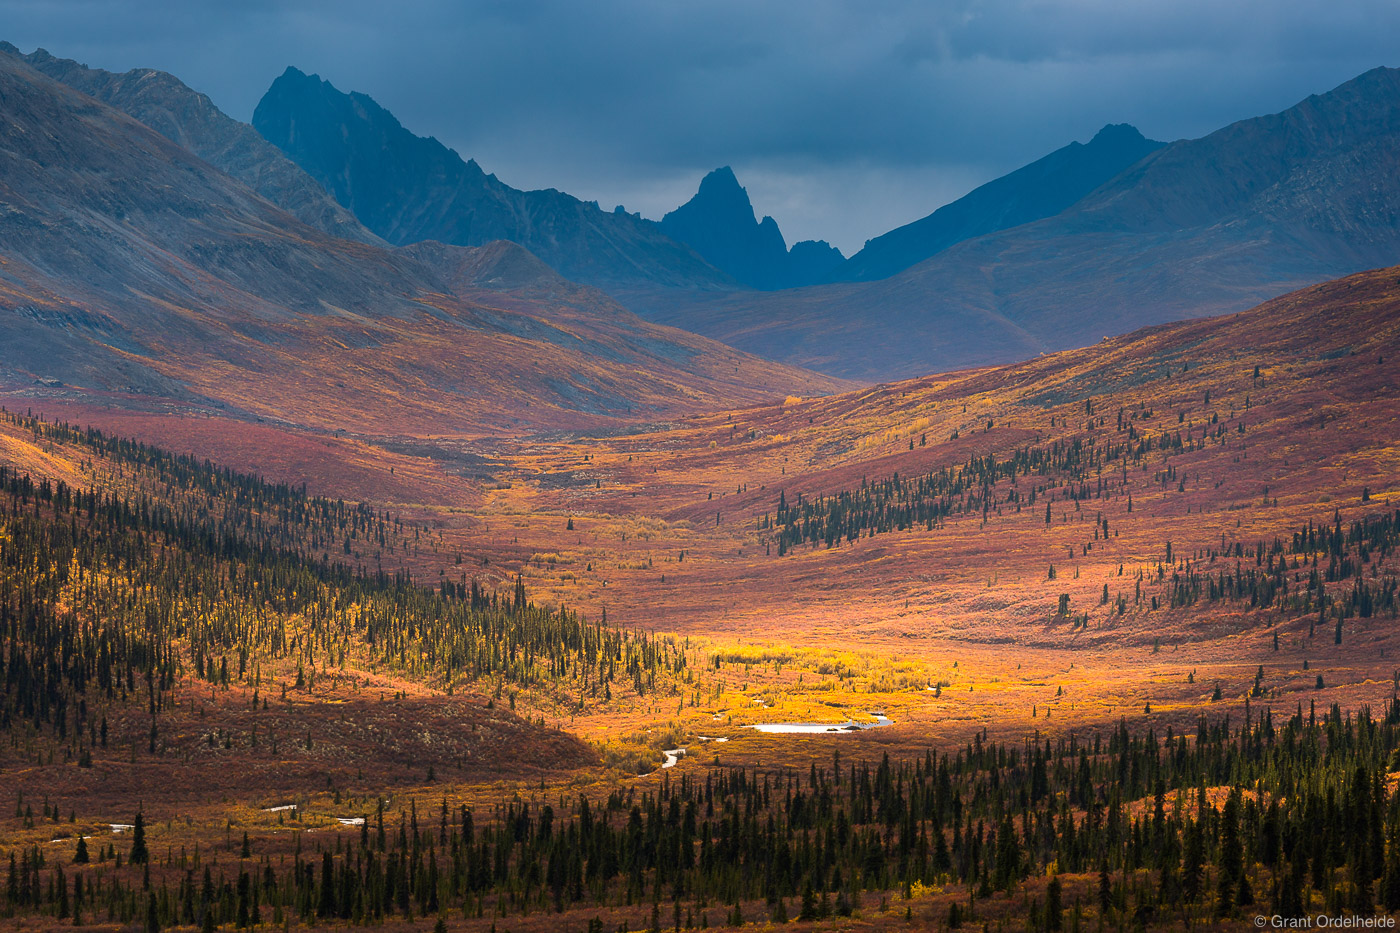 Tombstone Mountain and the autumn tundra as seen from the Dempster Highway in Tombstone Territorial Park.